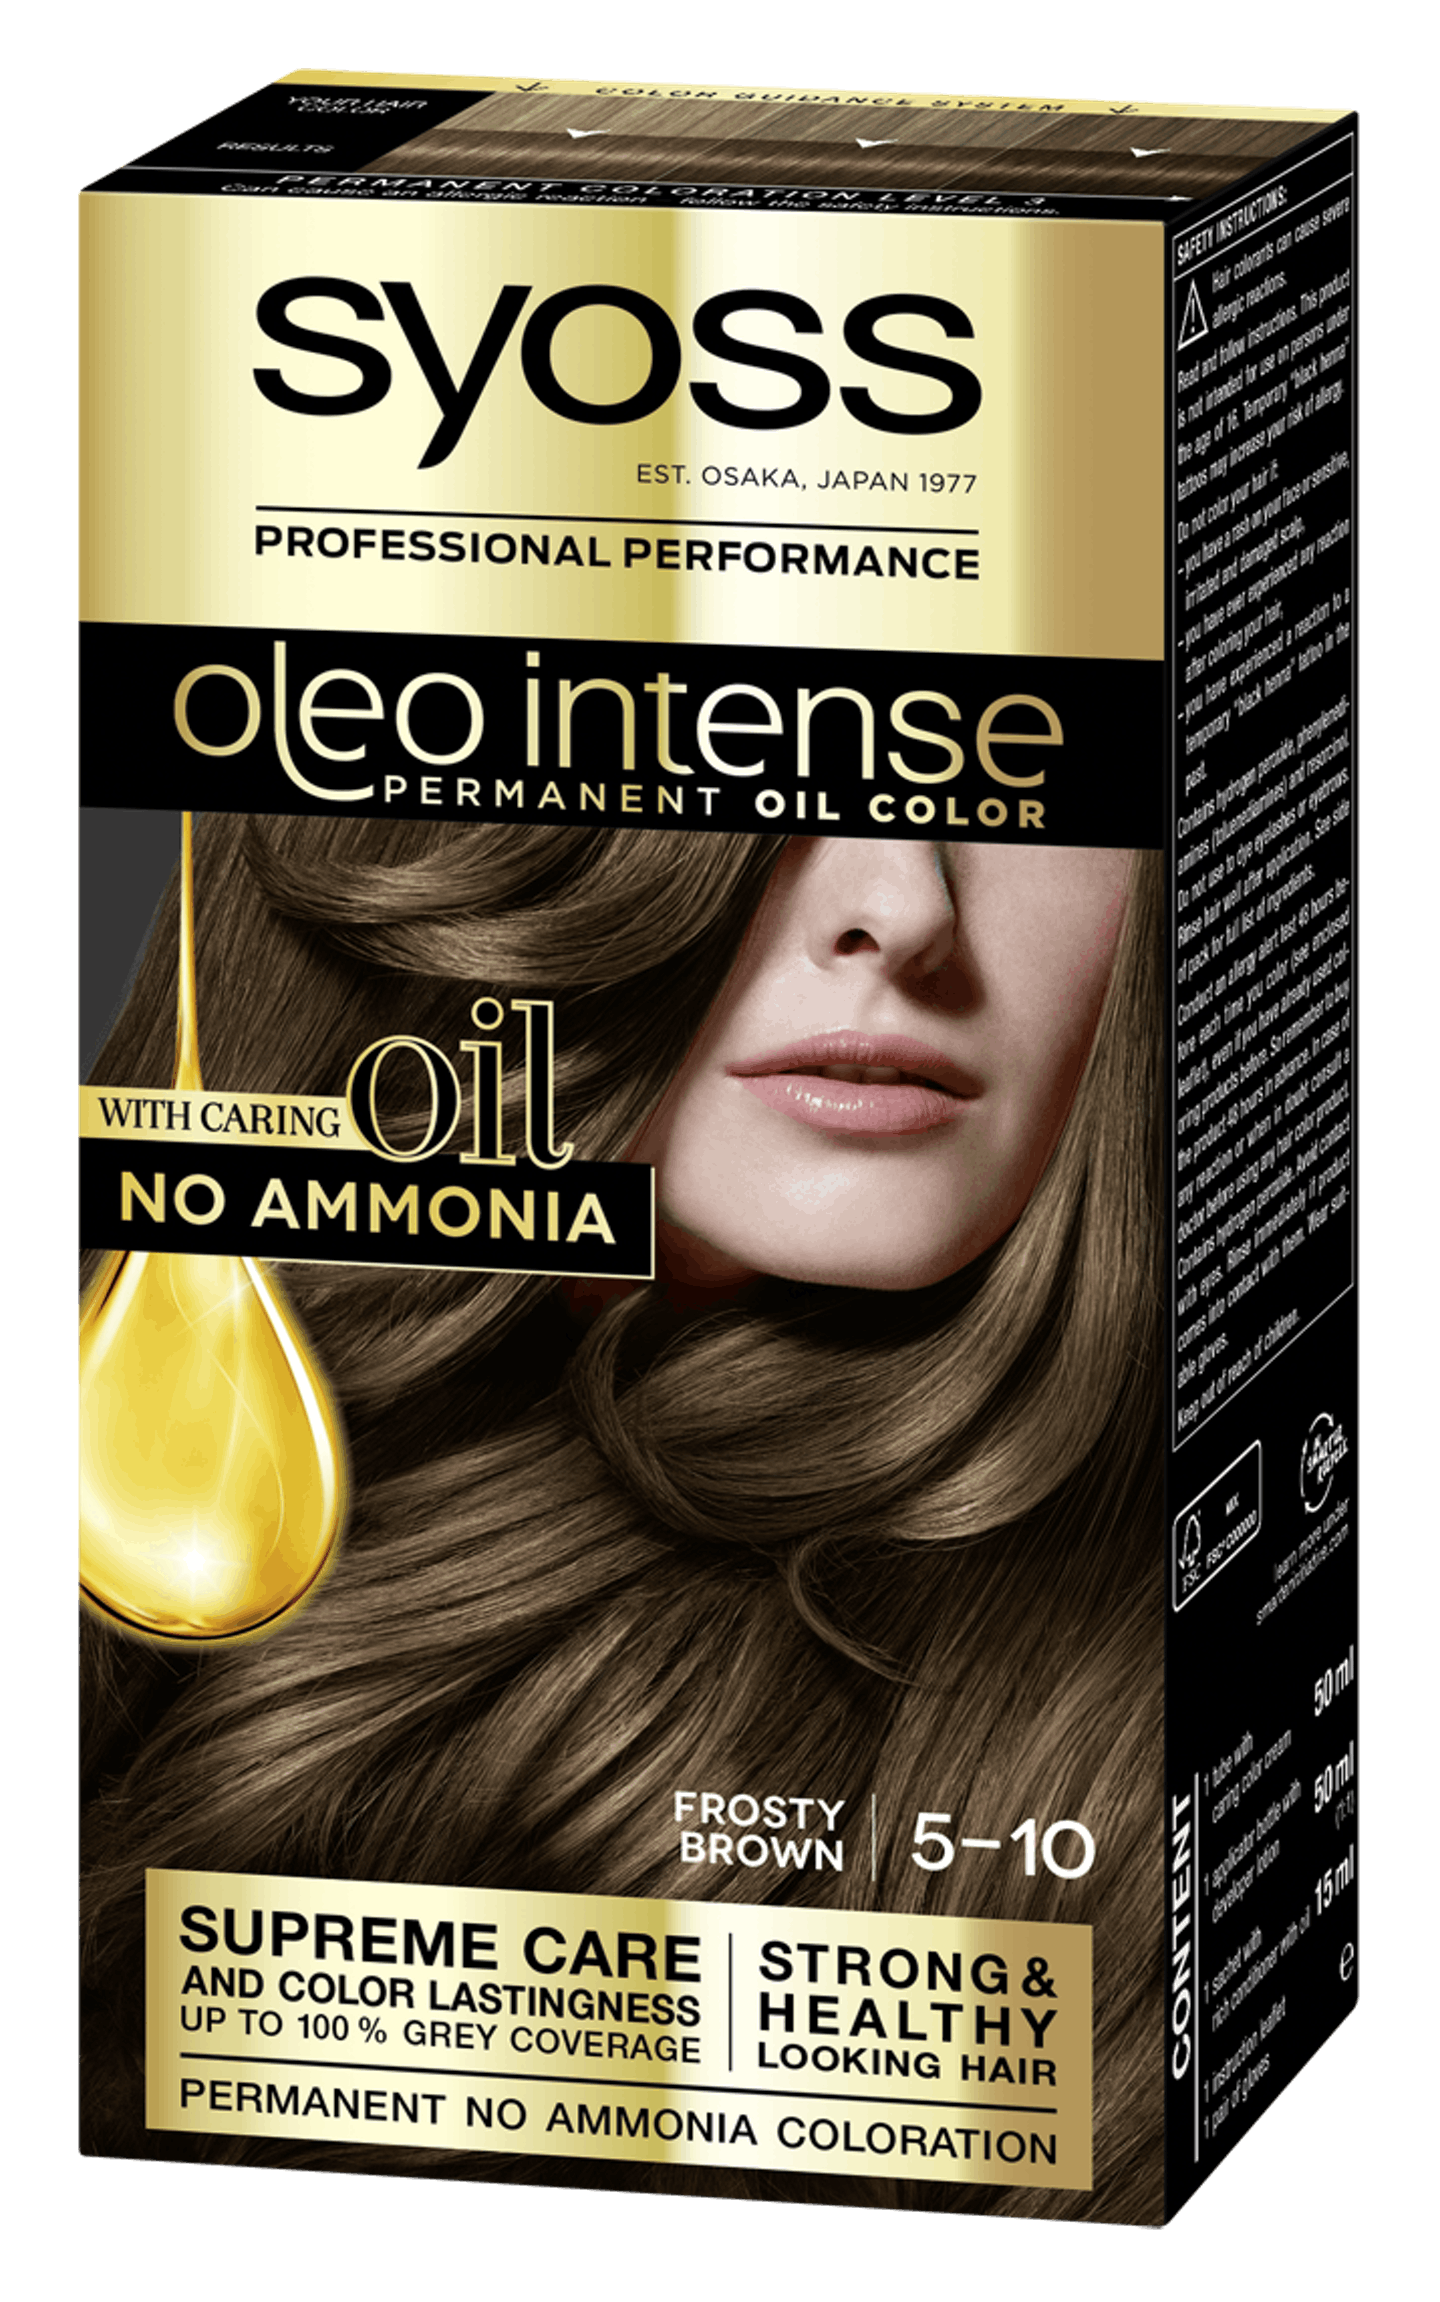 Syoss Oleo Intense Permanent Oil Color 5-10 Frosty Brown